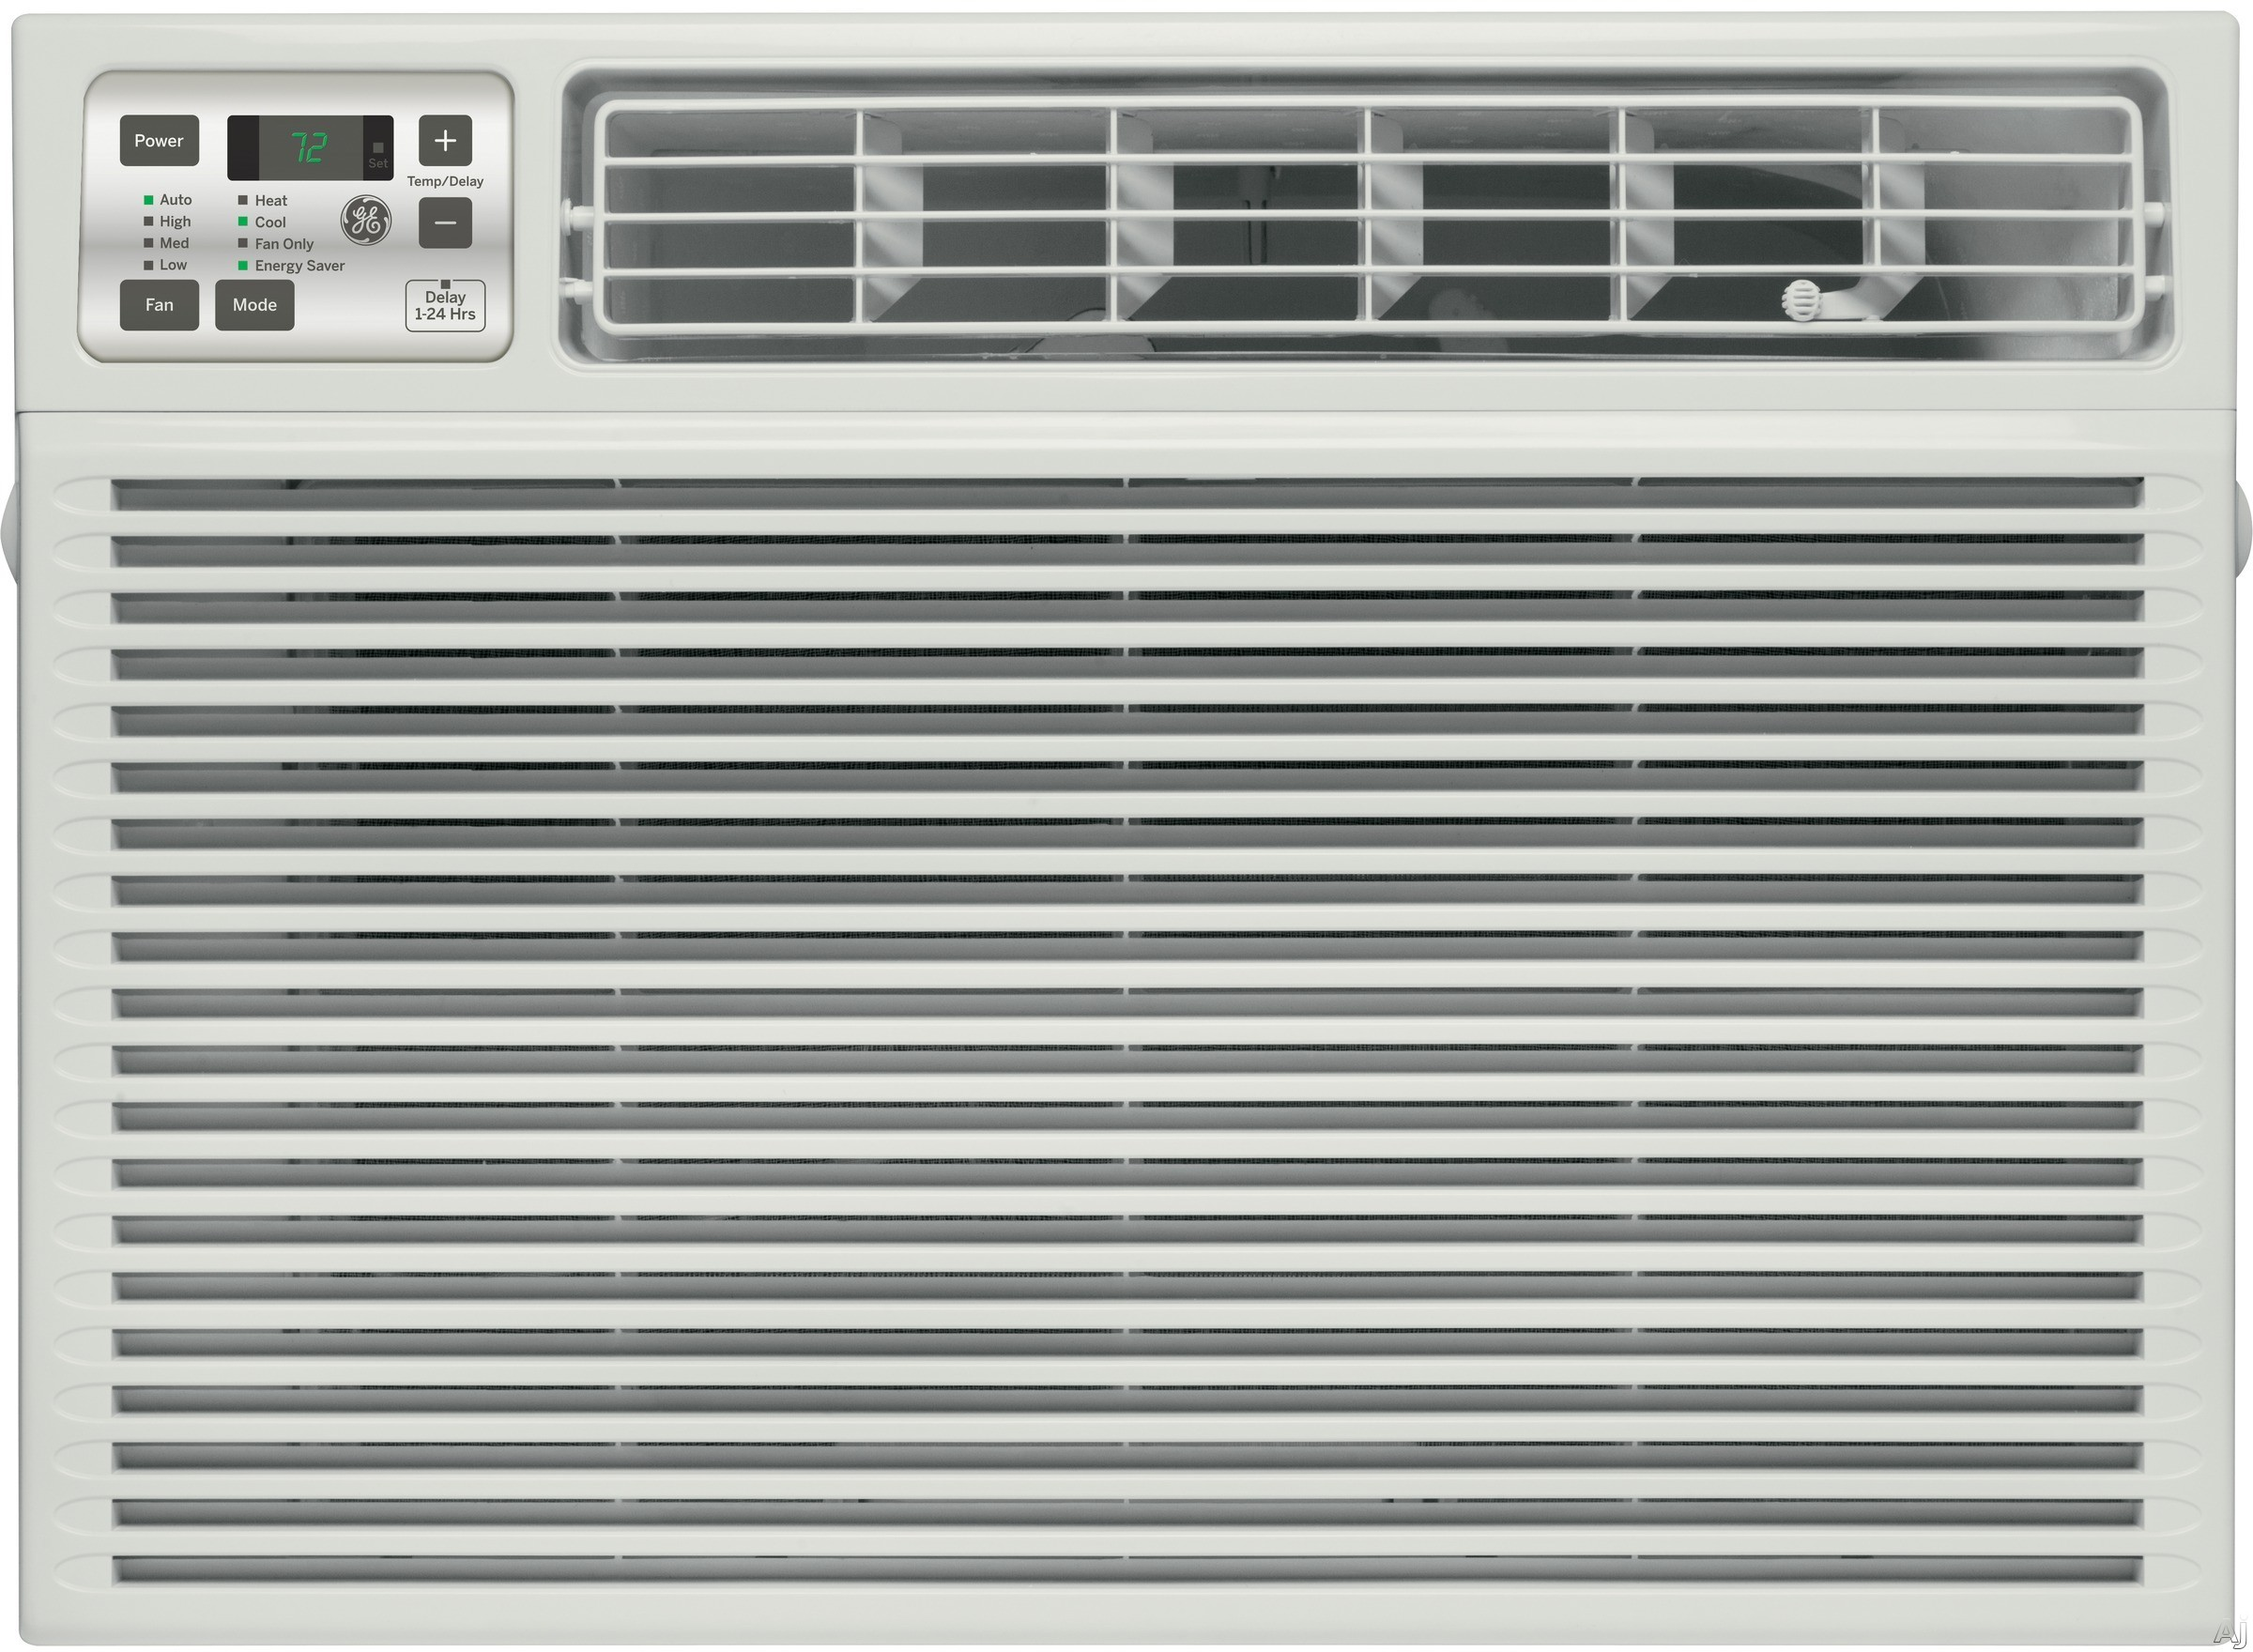 GE AEE24DT 24,000 BTU Room Air Conditioner with 11,000 Heating BTU, 470 CFM, 9.4 CEER, 8 Pts/Hr Dehumidification Capacity, Electronic Digital Thermostat with Remote and Energy Saver Feature AEE24DT